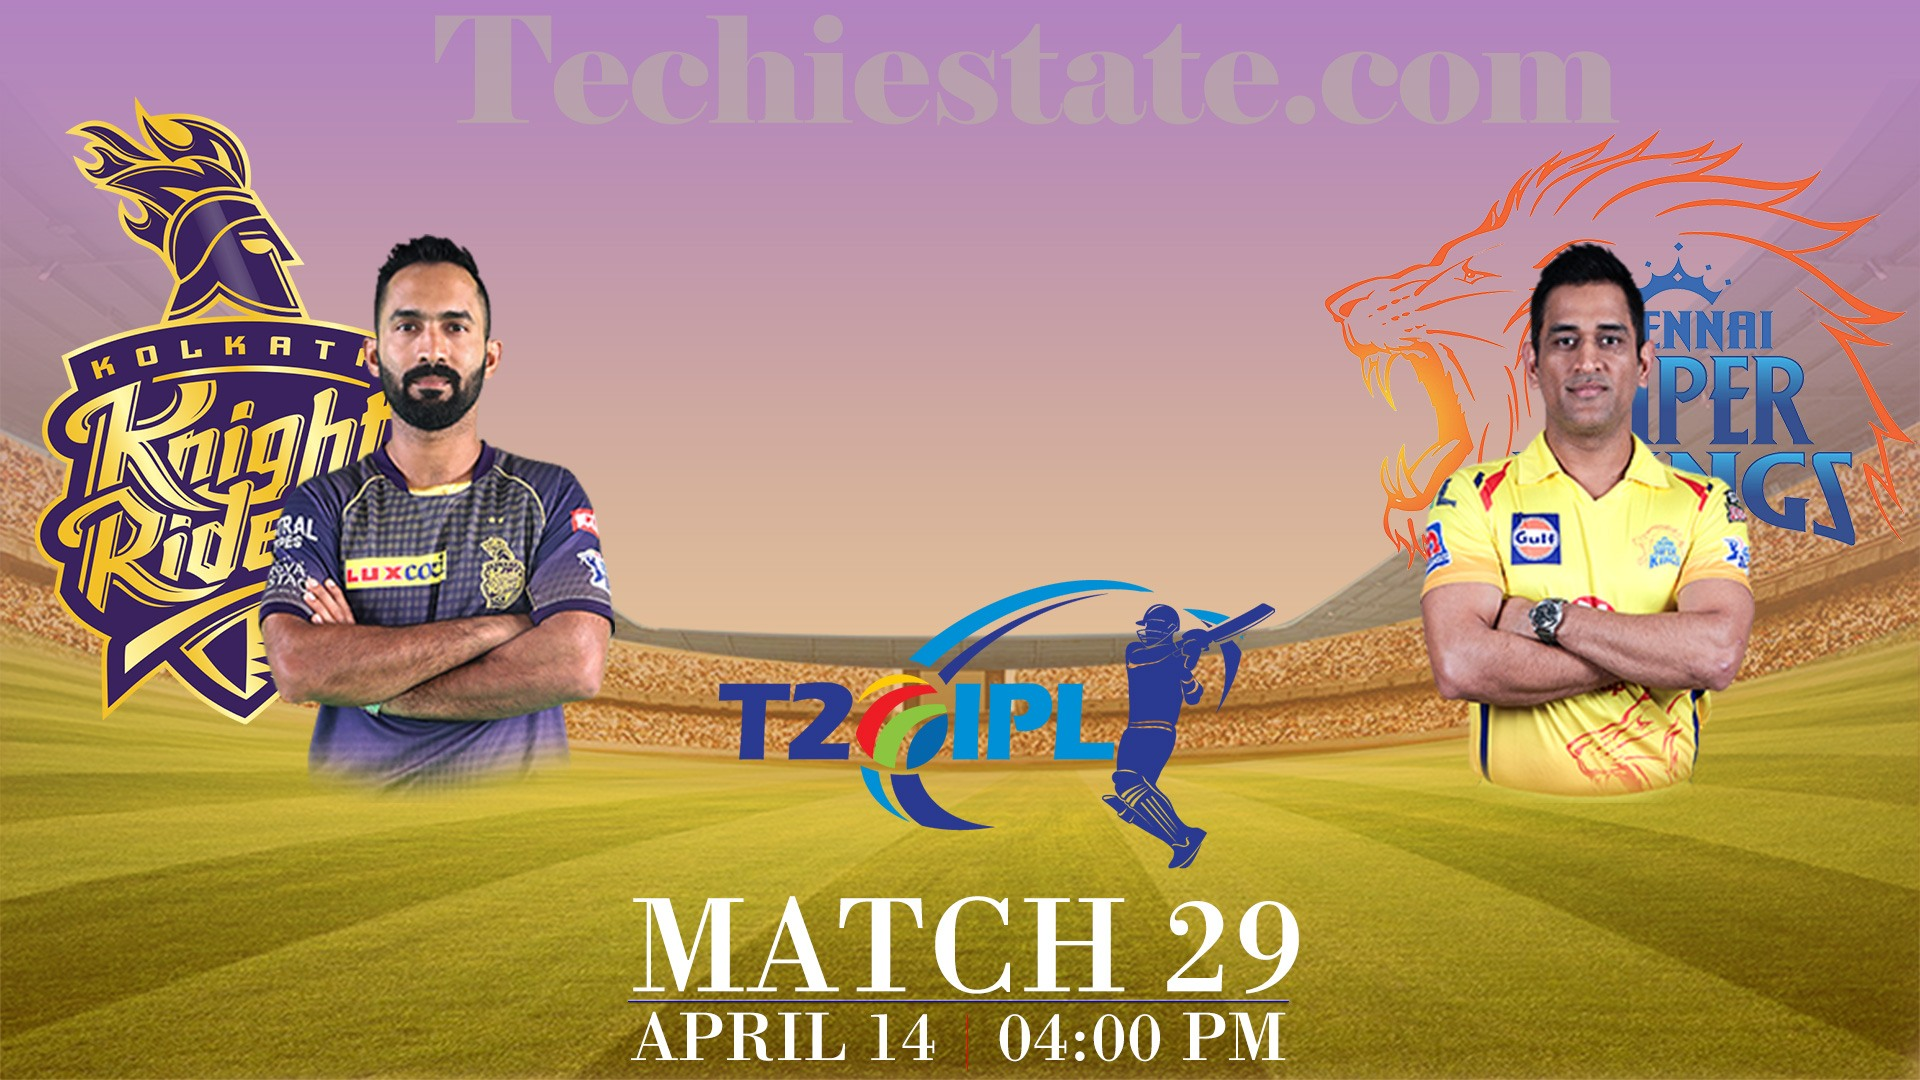 KKR Vs CSK 29th T20 Match Prediction, Live Streaming Scores